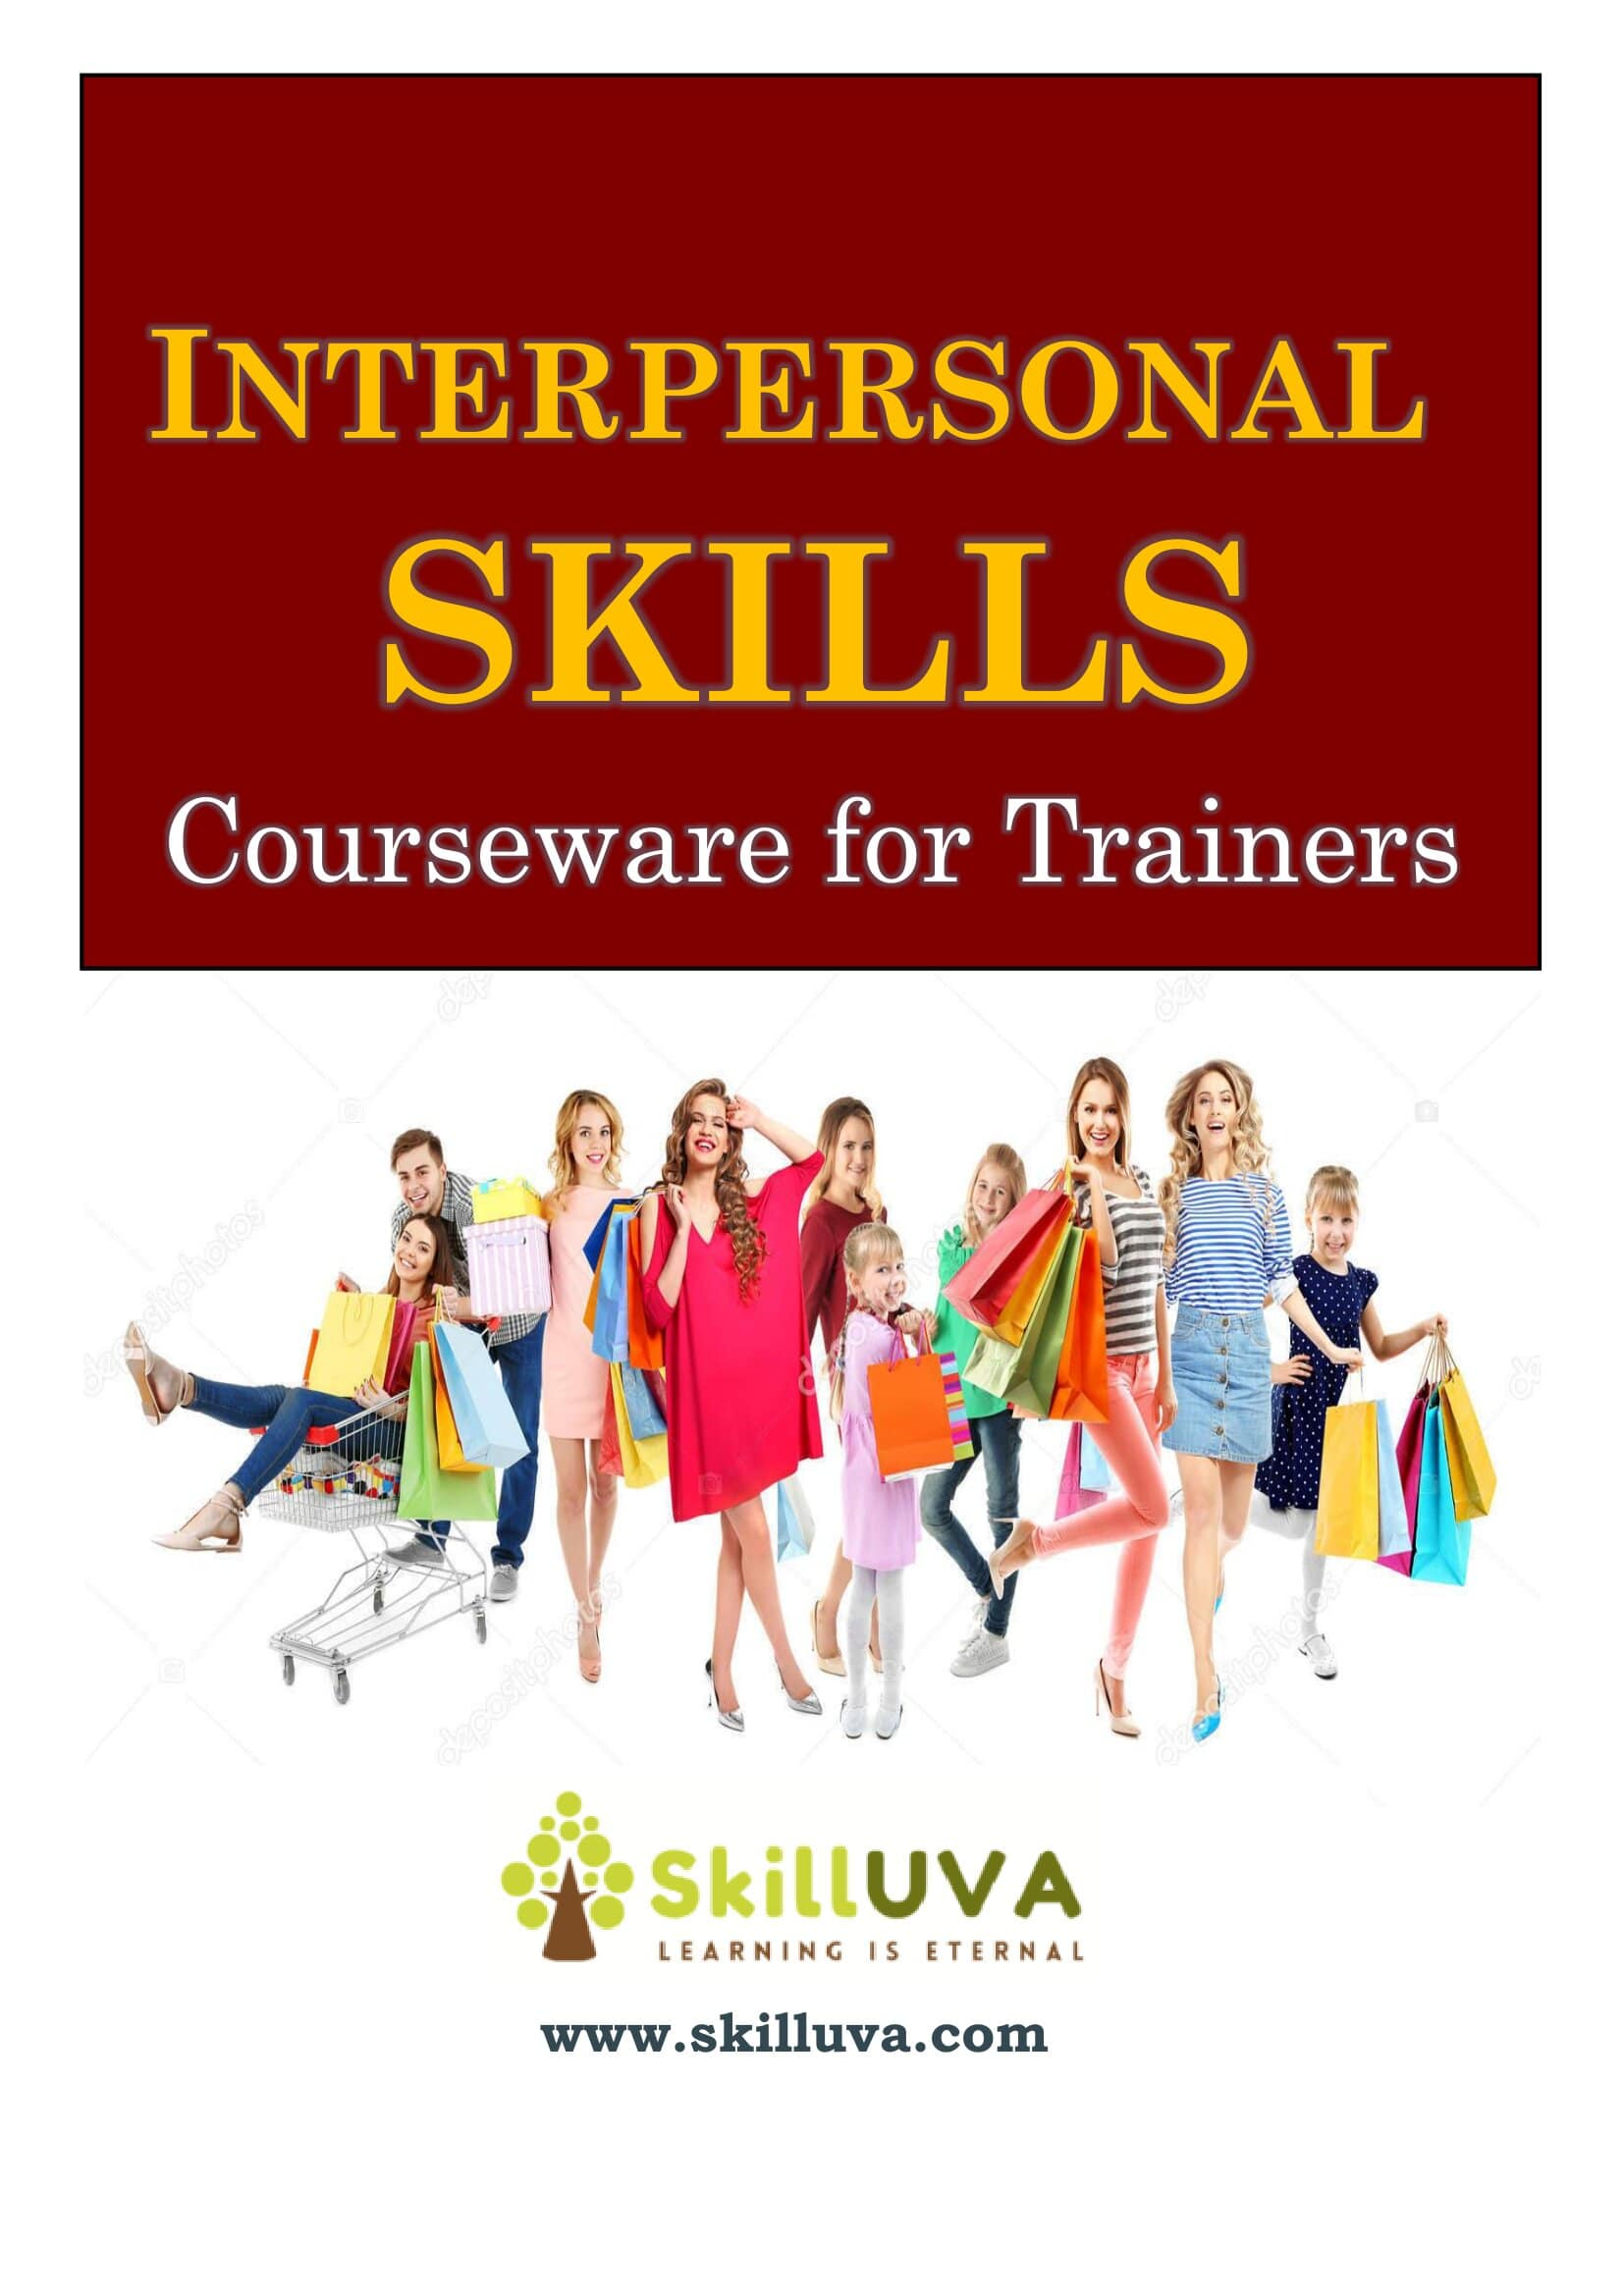 Interpersonal Skills – Workshop Courseware for Trainers